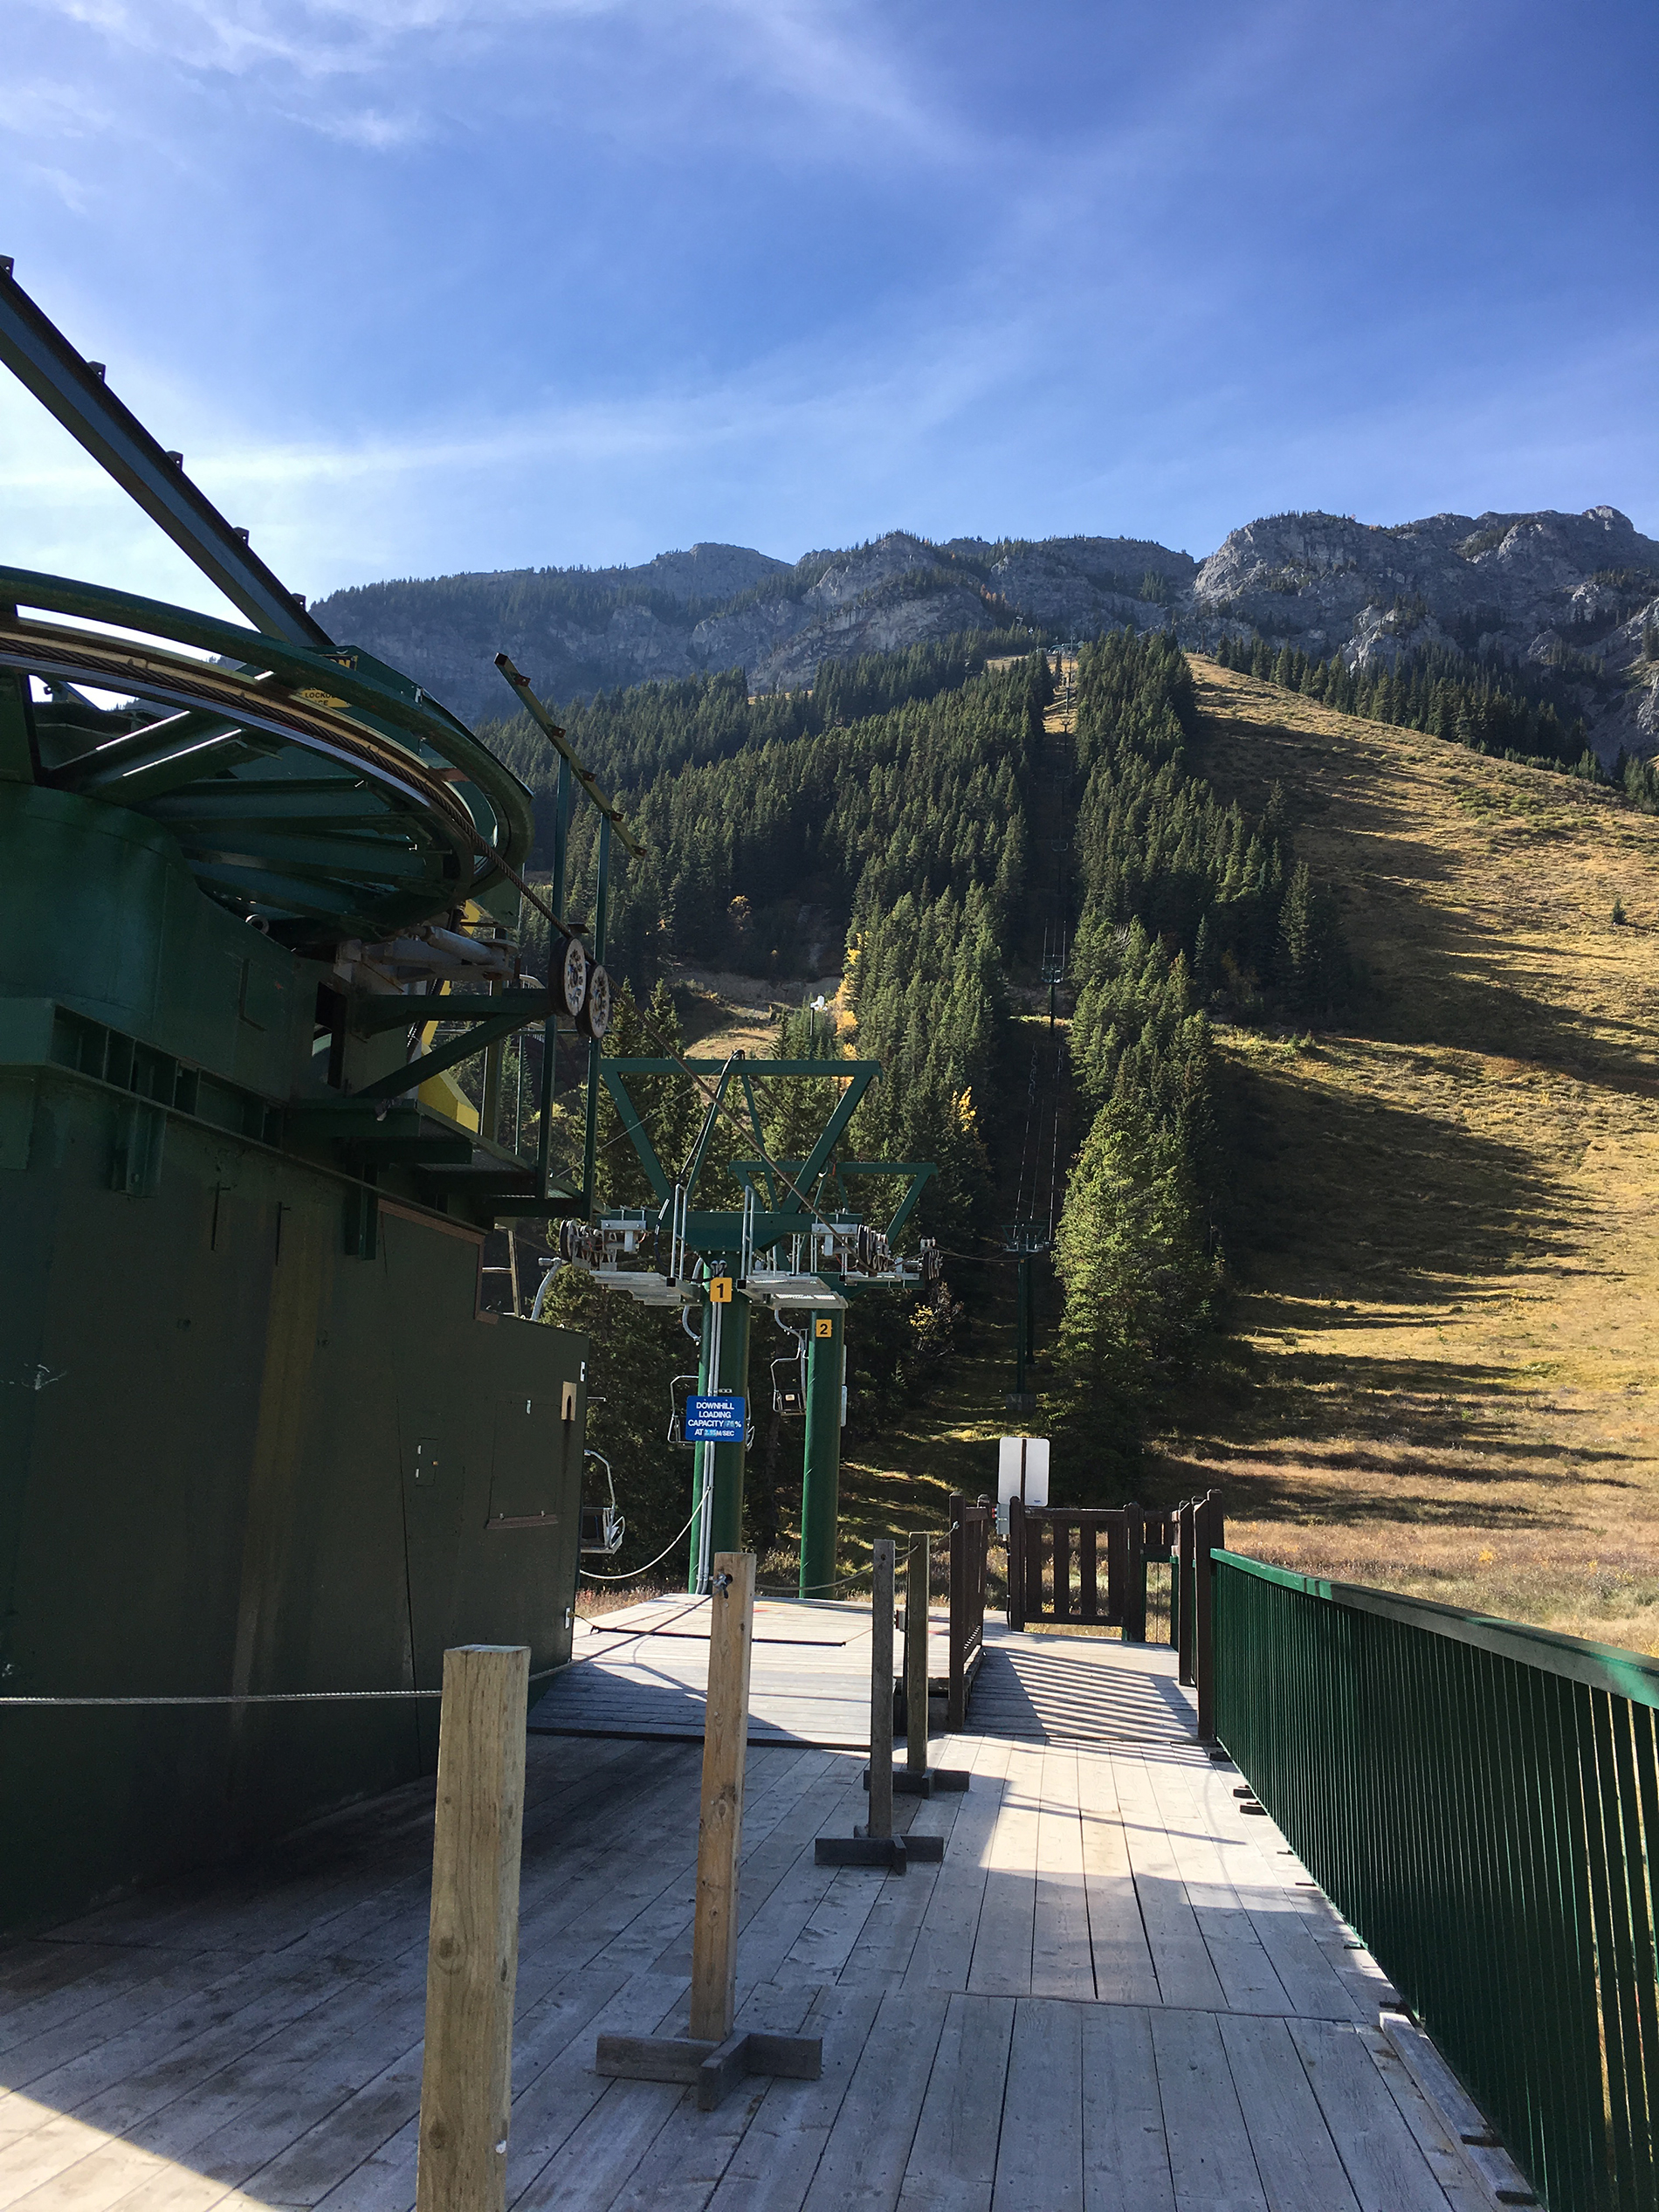 The Ski lift at the Mt. Norquay Ski lift operates in Summer to take adventerers up to the Via Ferrata at Banff National Park.